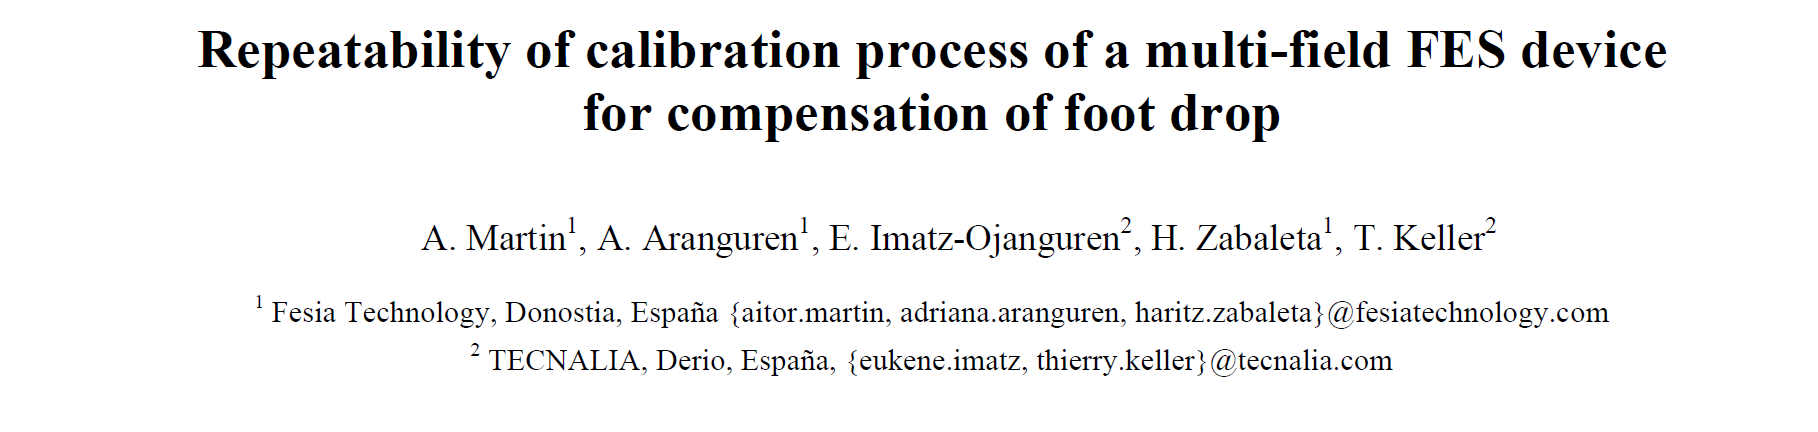 Repeatability of calibration process of a multi-field FES device for compensation of foot drop